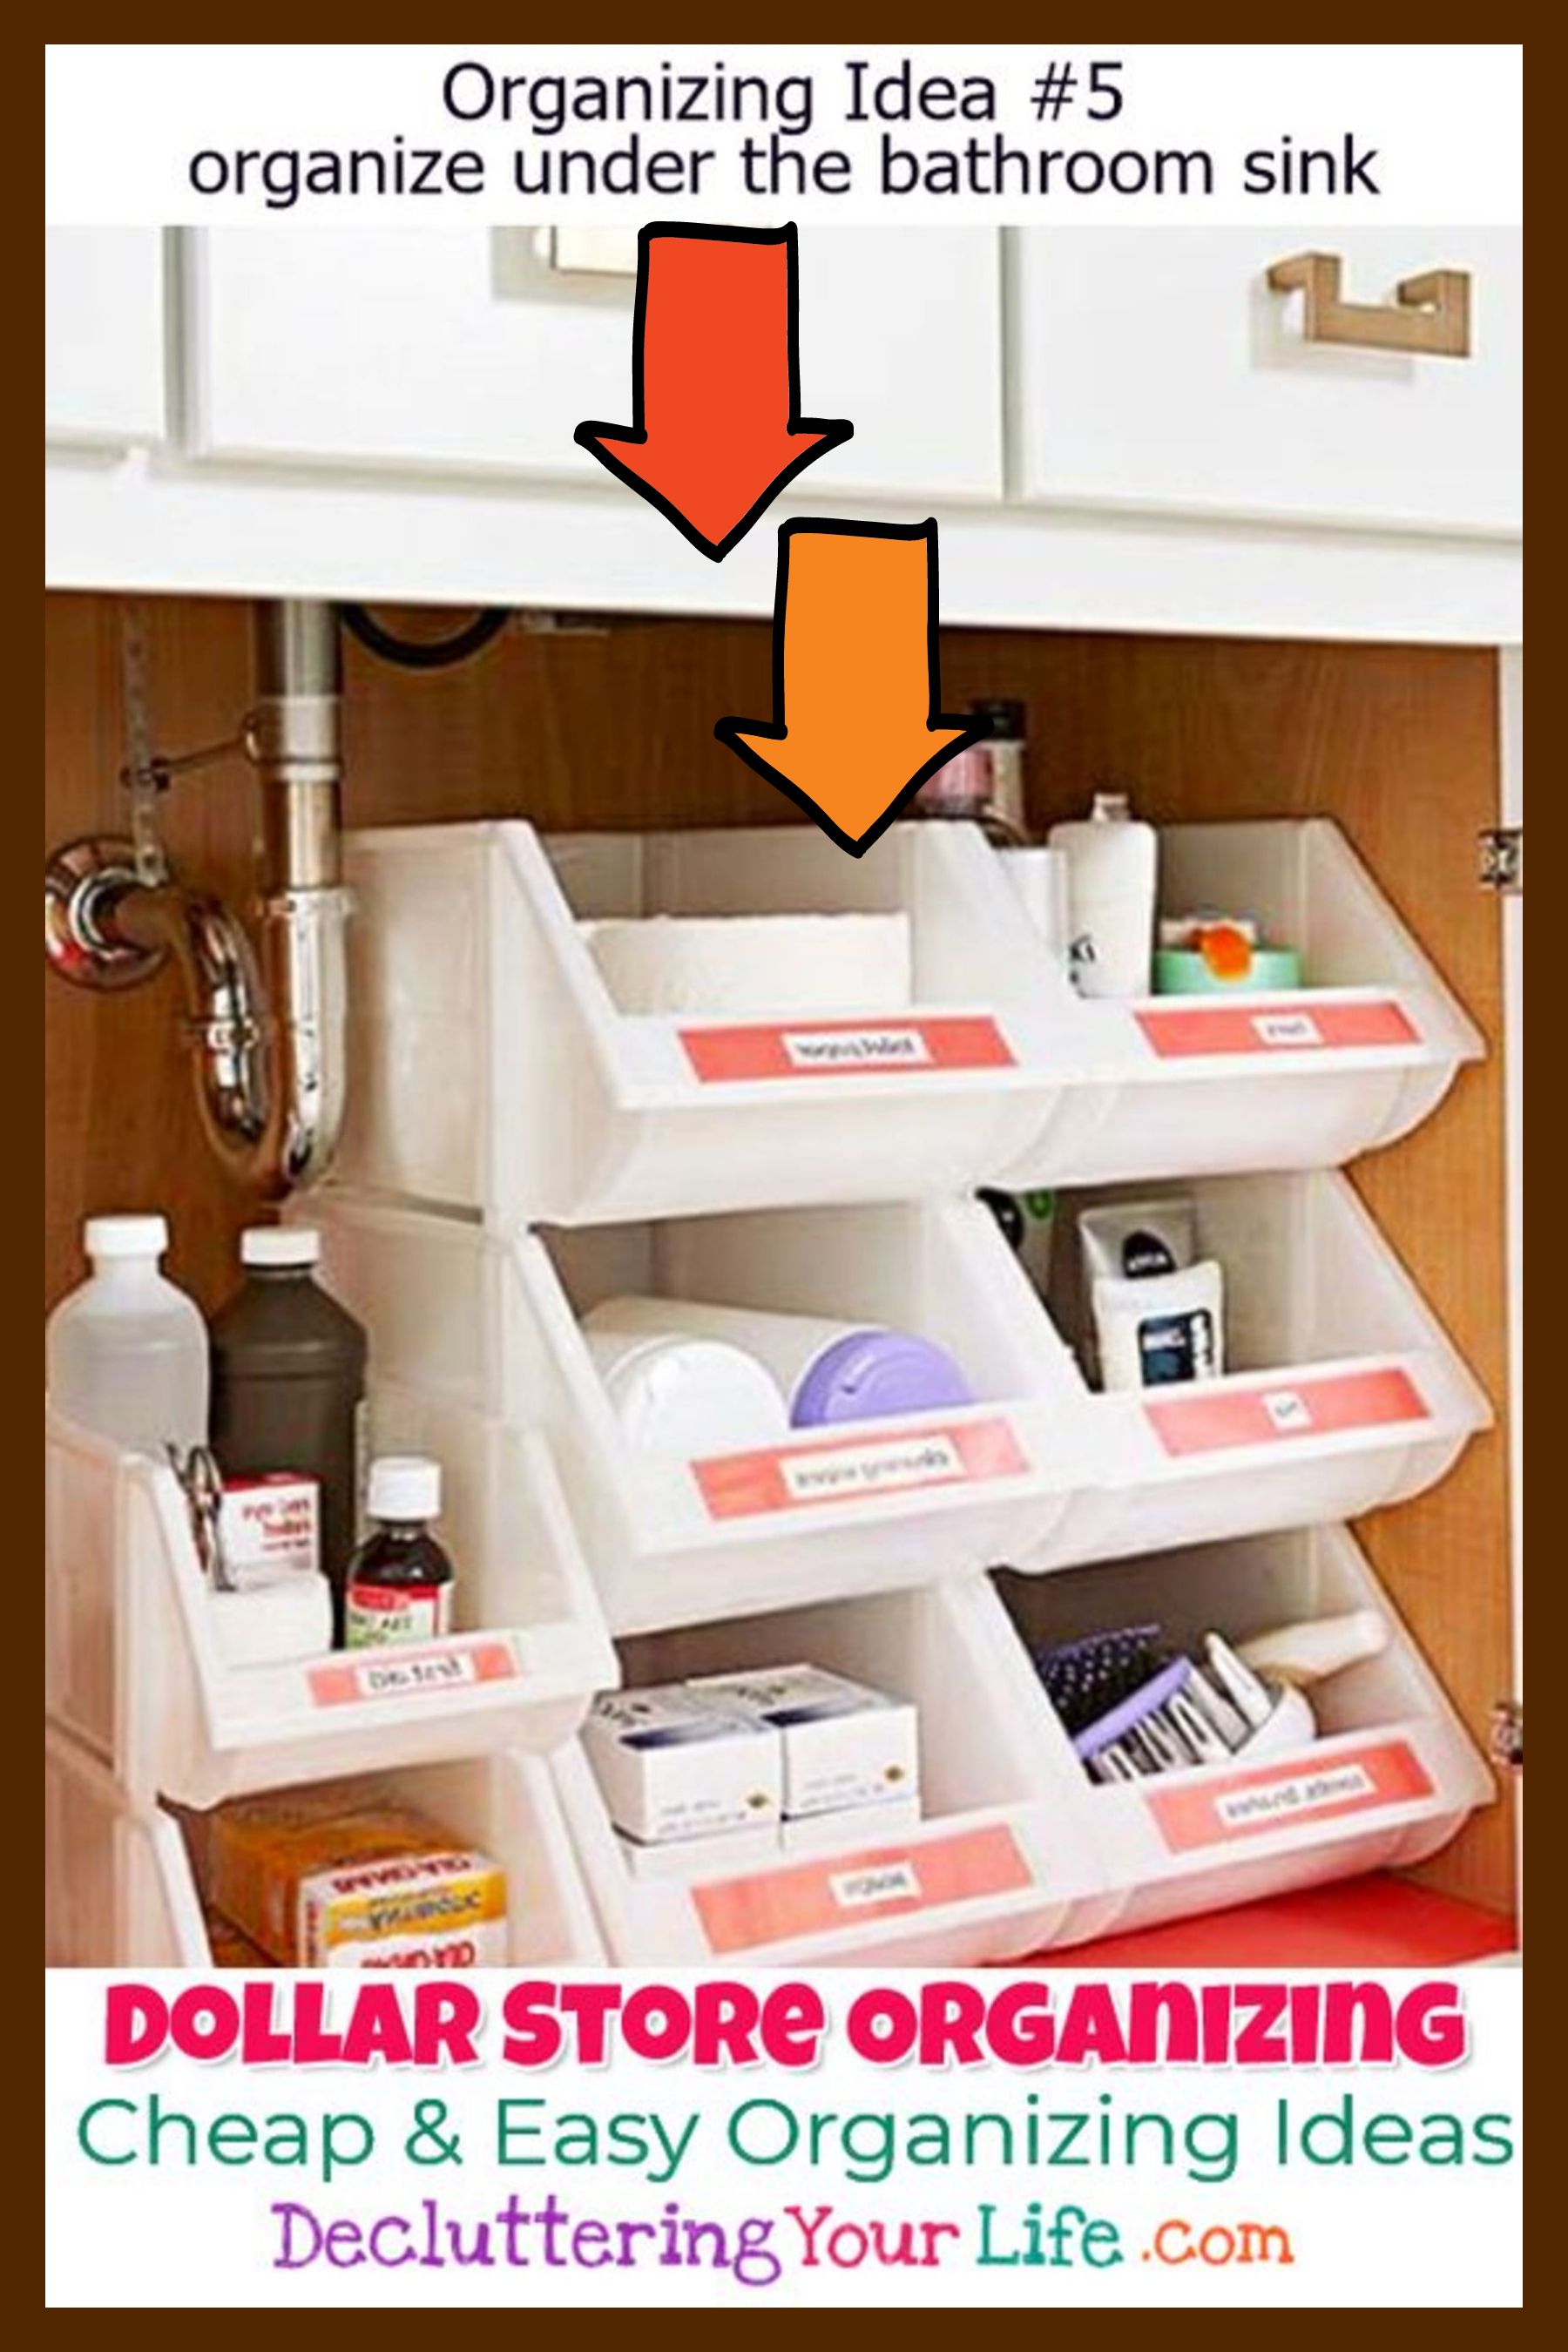 Cheap And Easy Organization Ideas For The Home Using Dollar Stores Organizing Id Small Bathroom Storage Diy Cheap Organization Dollar Store Organizing Bathroom [ 2700 x 1800 Pixel ]